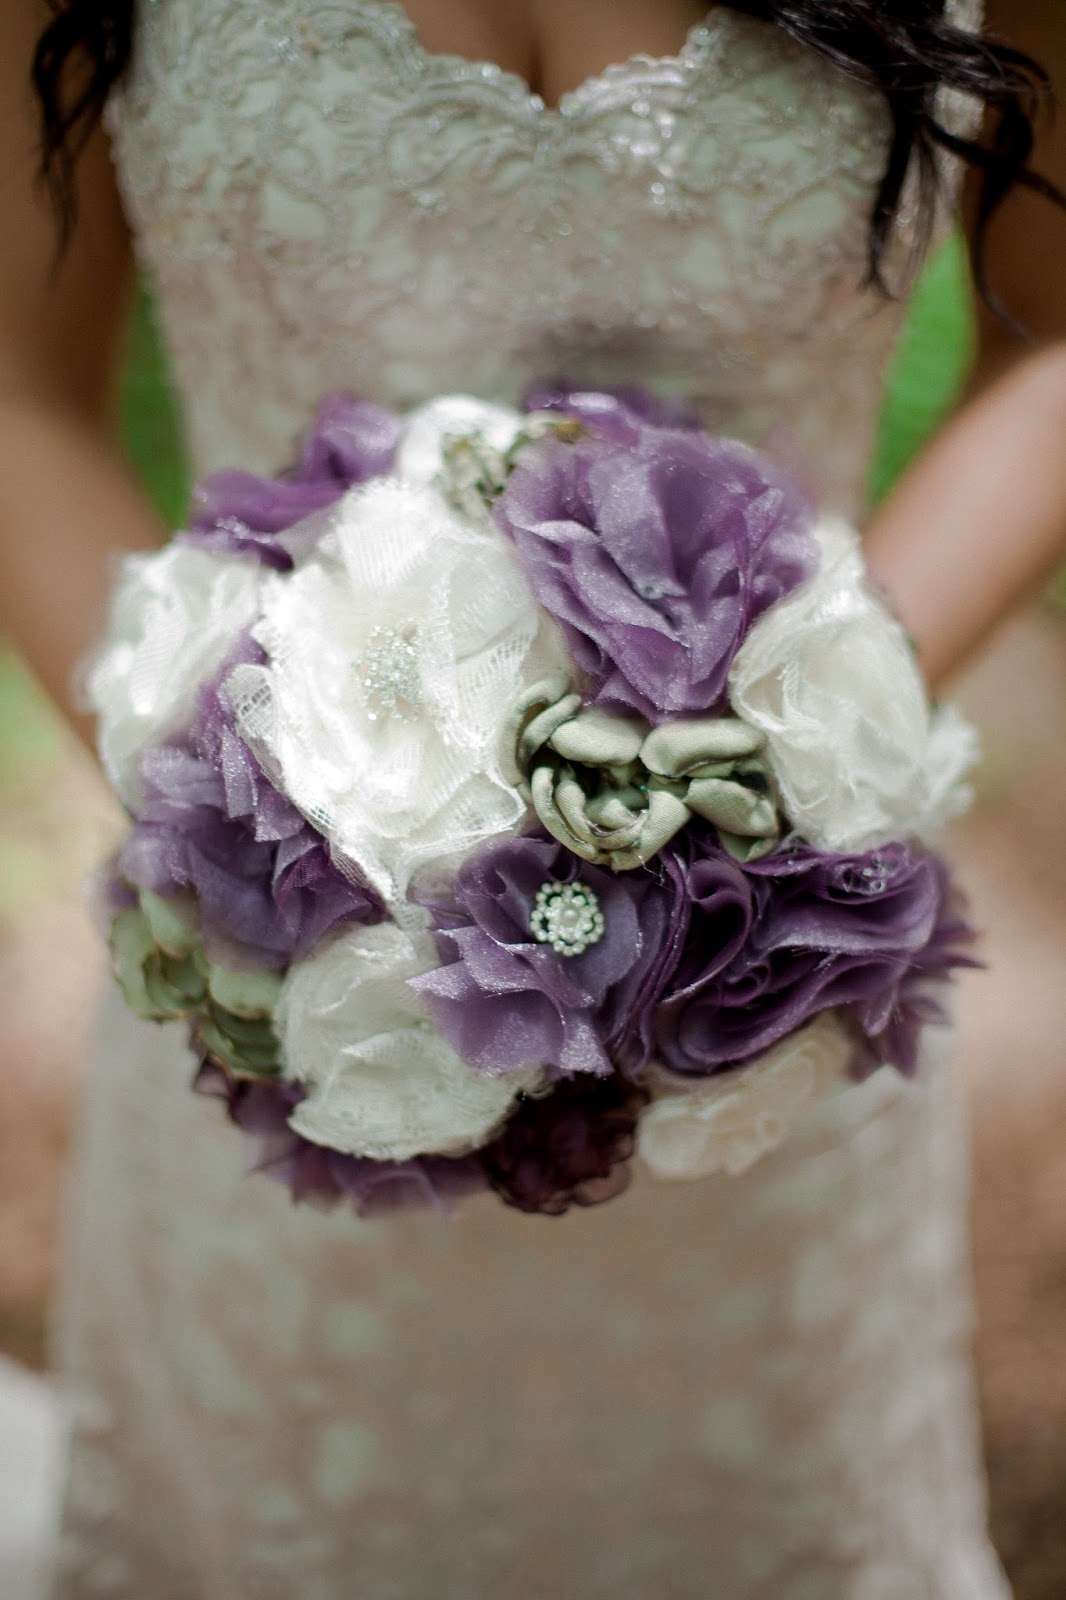 The DIY Rustic Bride: DIY Fabric Flower Bouquet